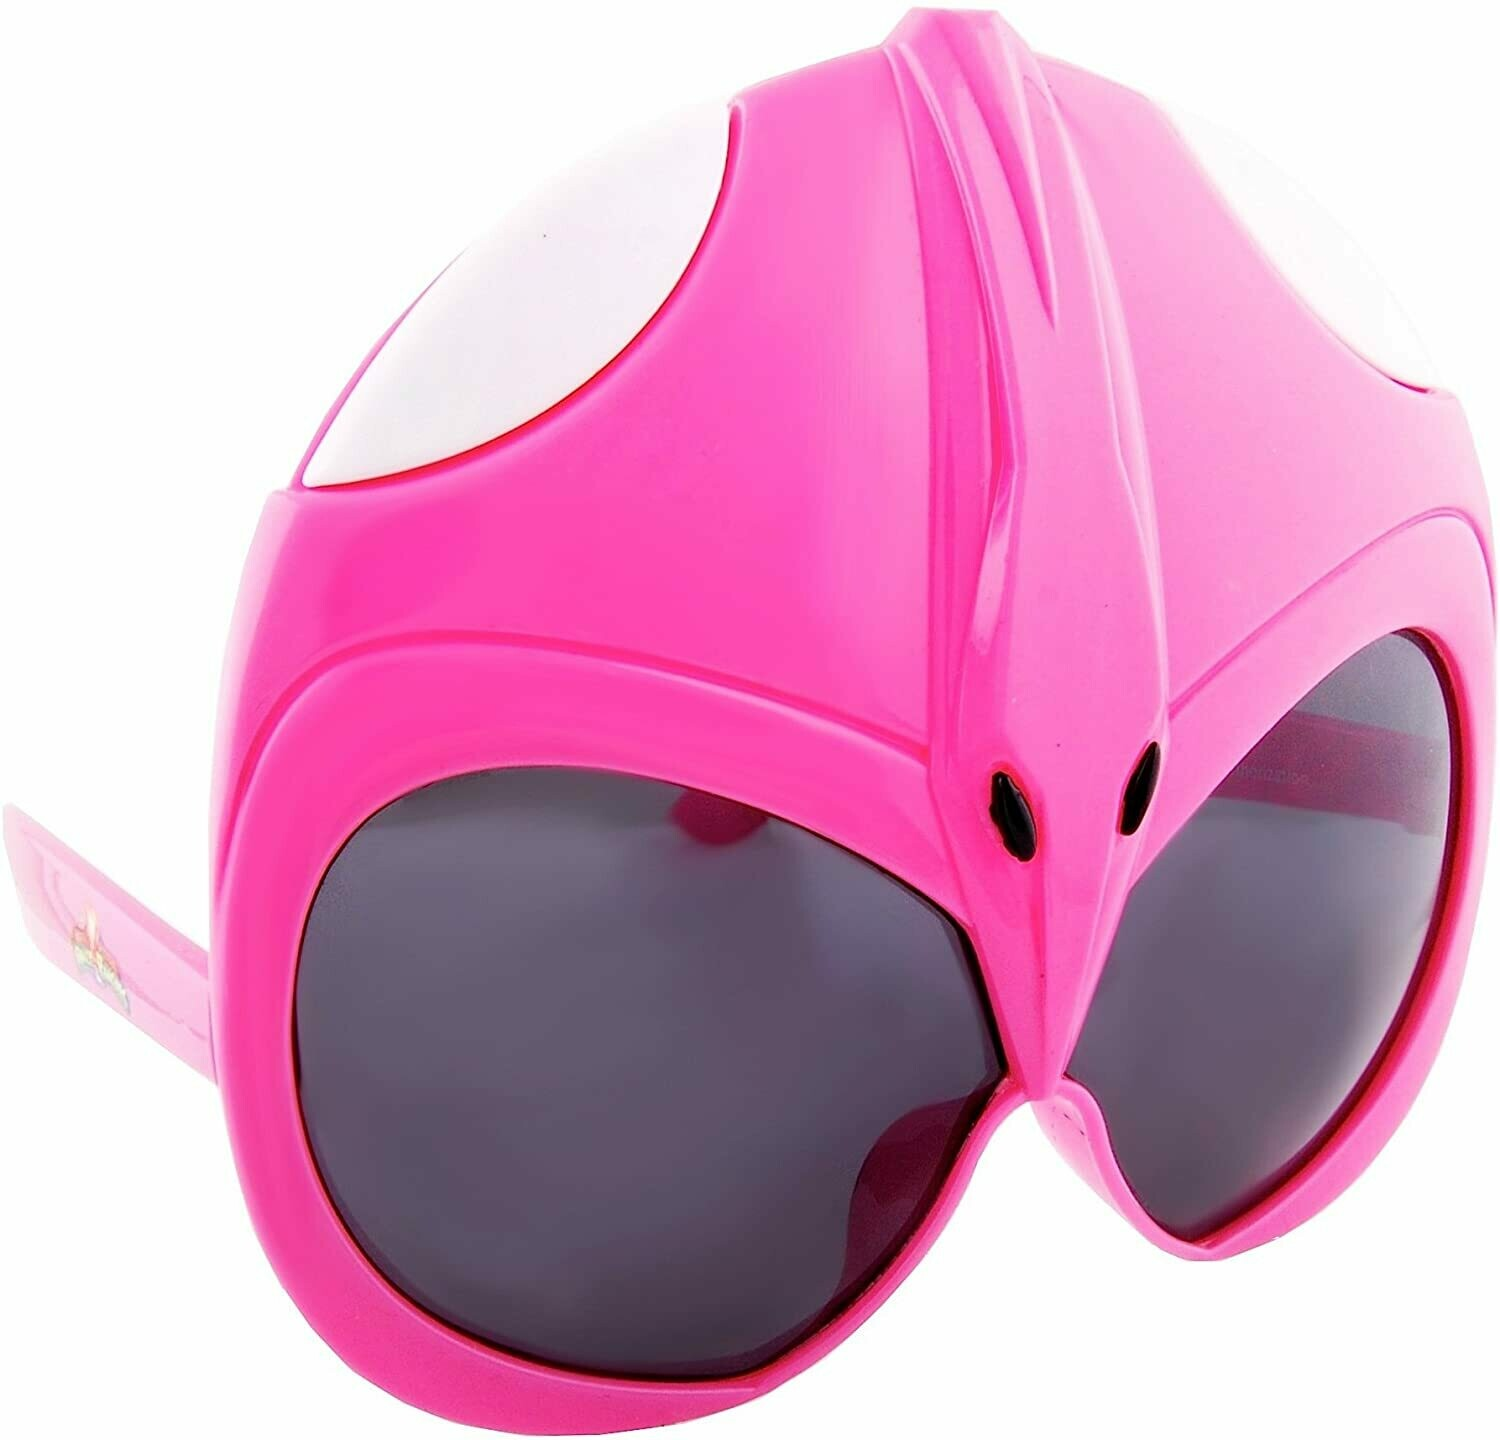 Sunstaches Mighty Morphin' Power Rangers Pink Power Ranger Sunglasses, Party Favors, UV400